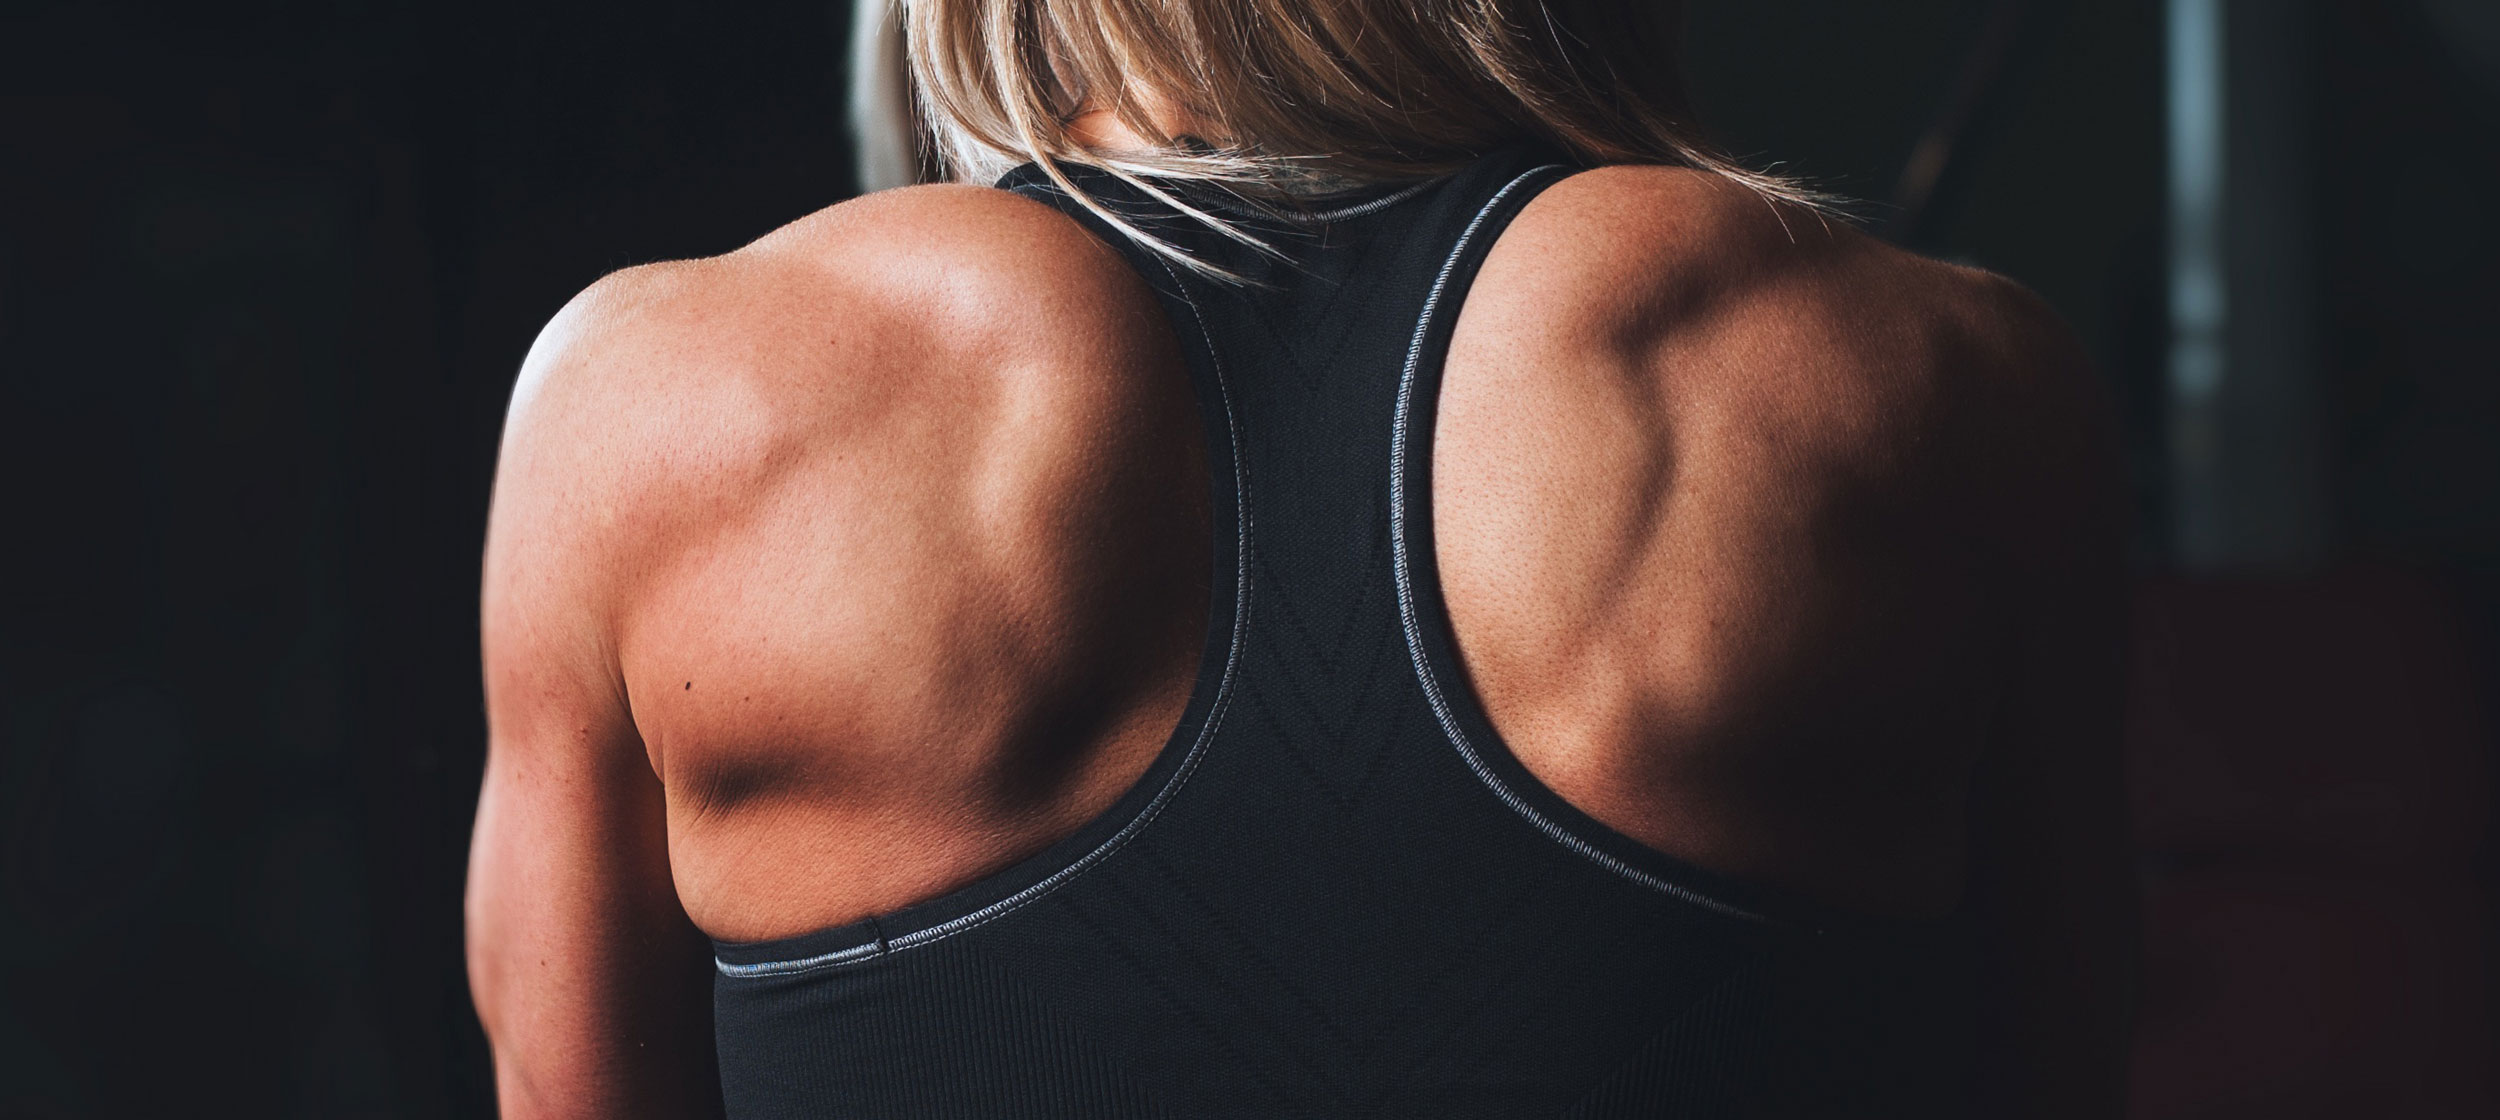 Women showing her shoulders and back muscles.